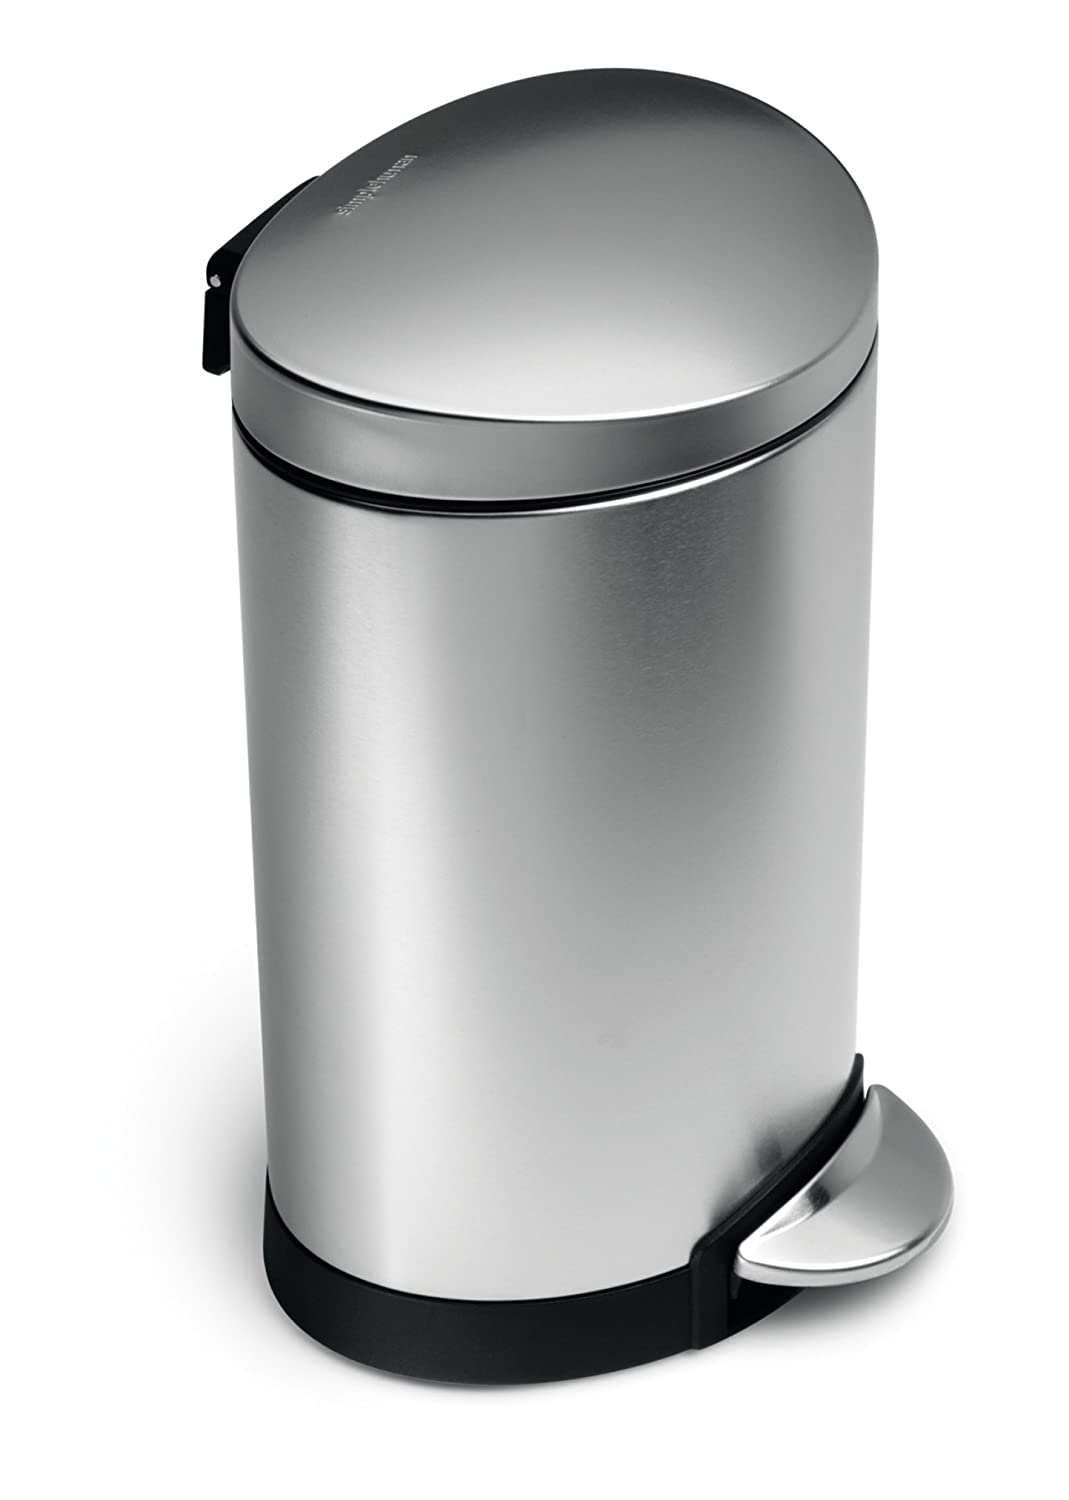 Trash Can With Lid Kitchen Stainless Steel Kitchen Trash Can Garbage Waste Bin Pedal